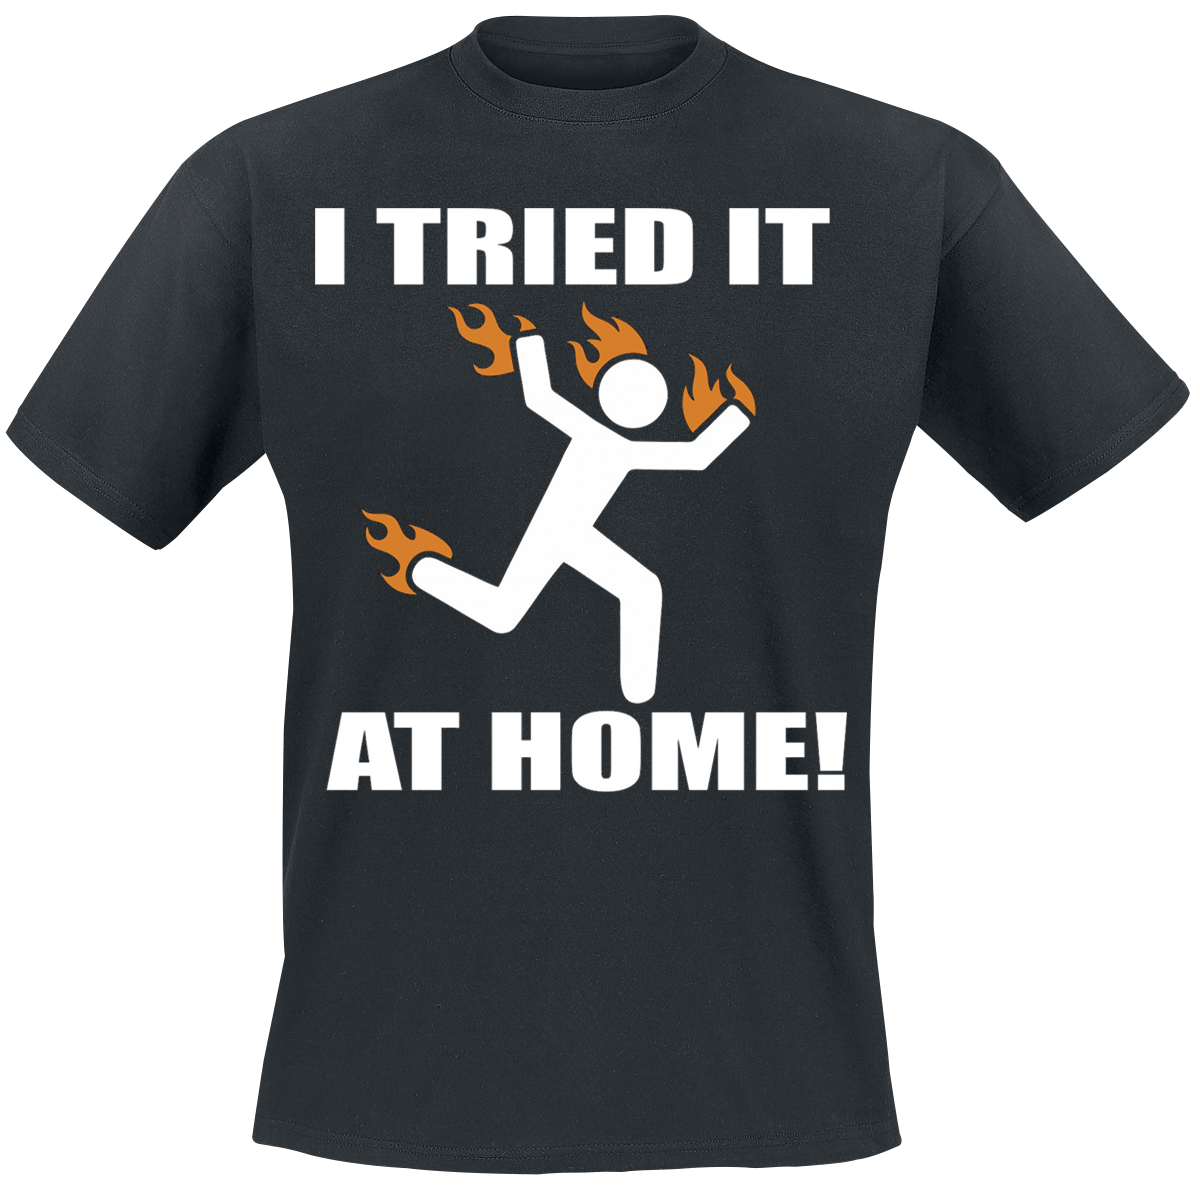 I Tried It At Home -  - T-Shirt - black image